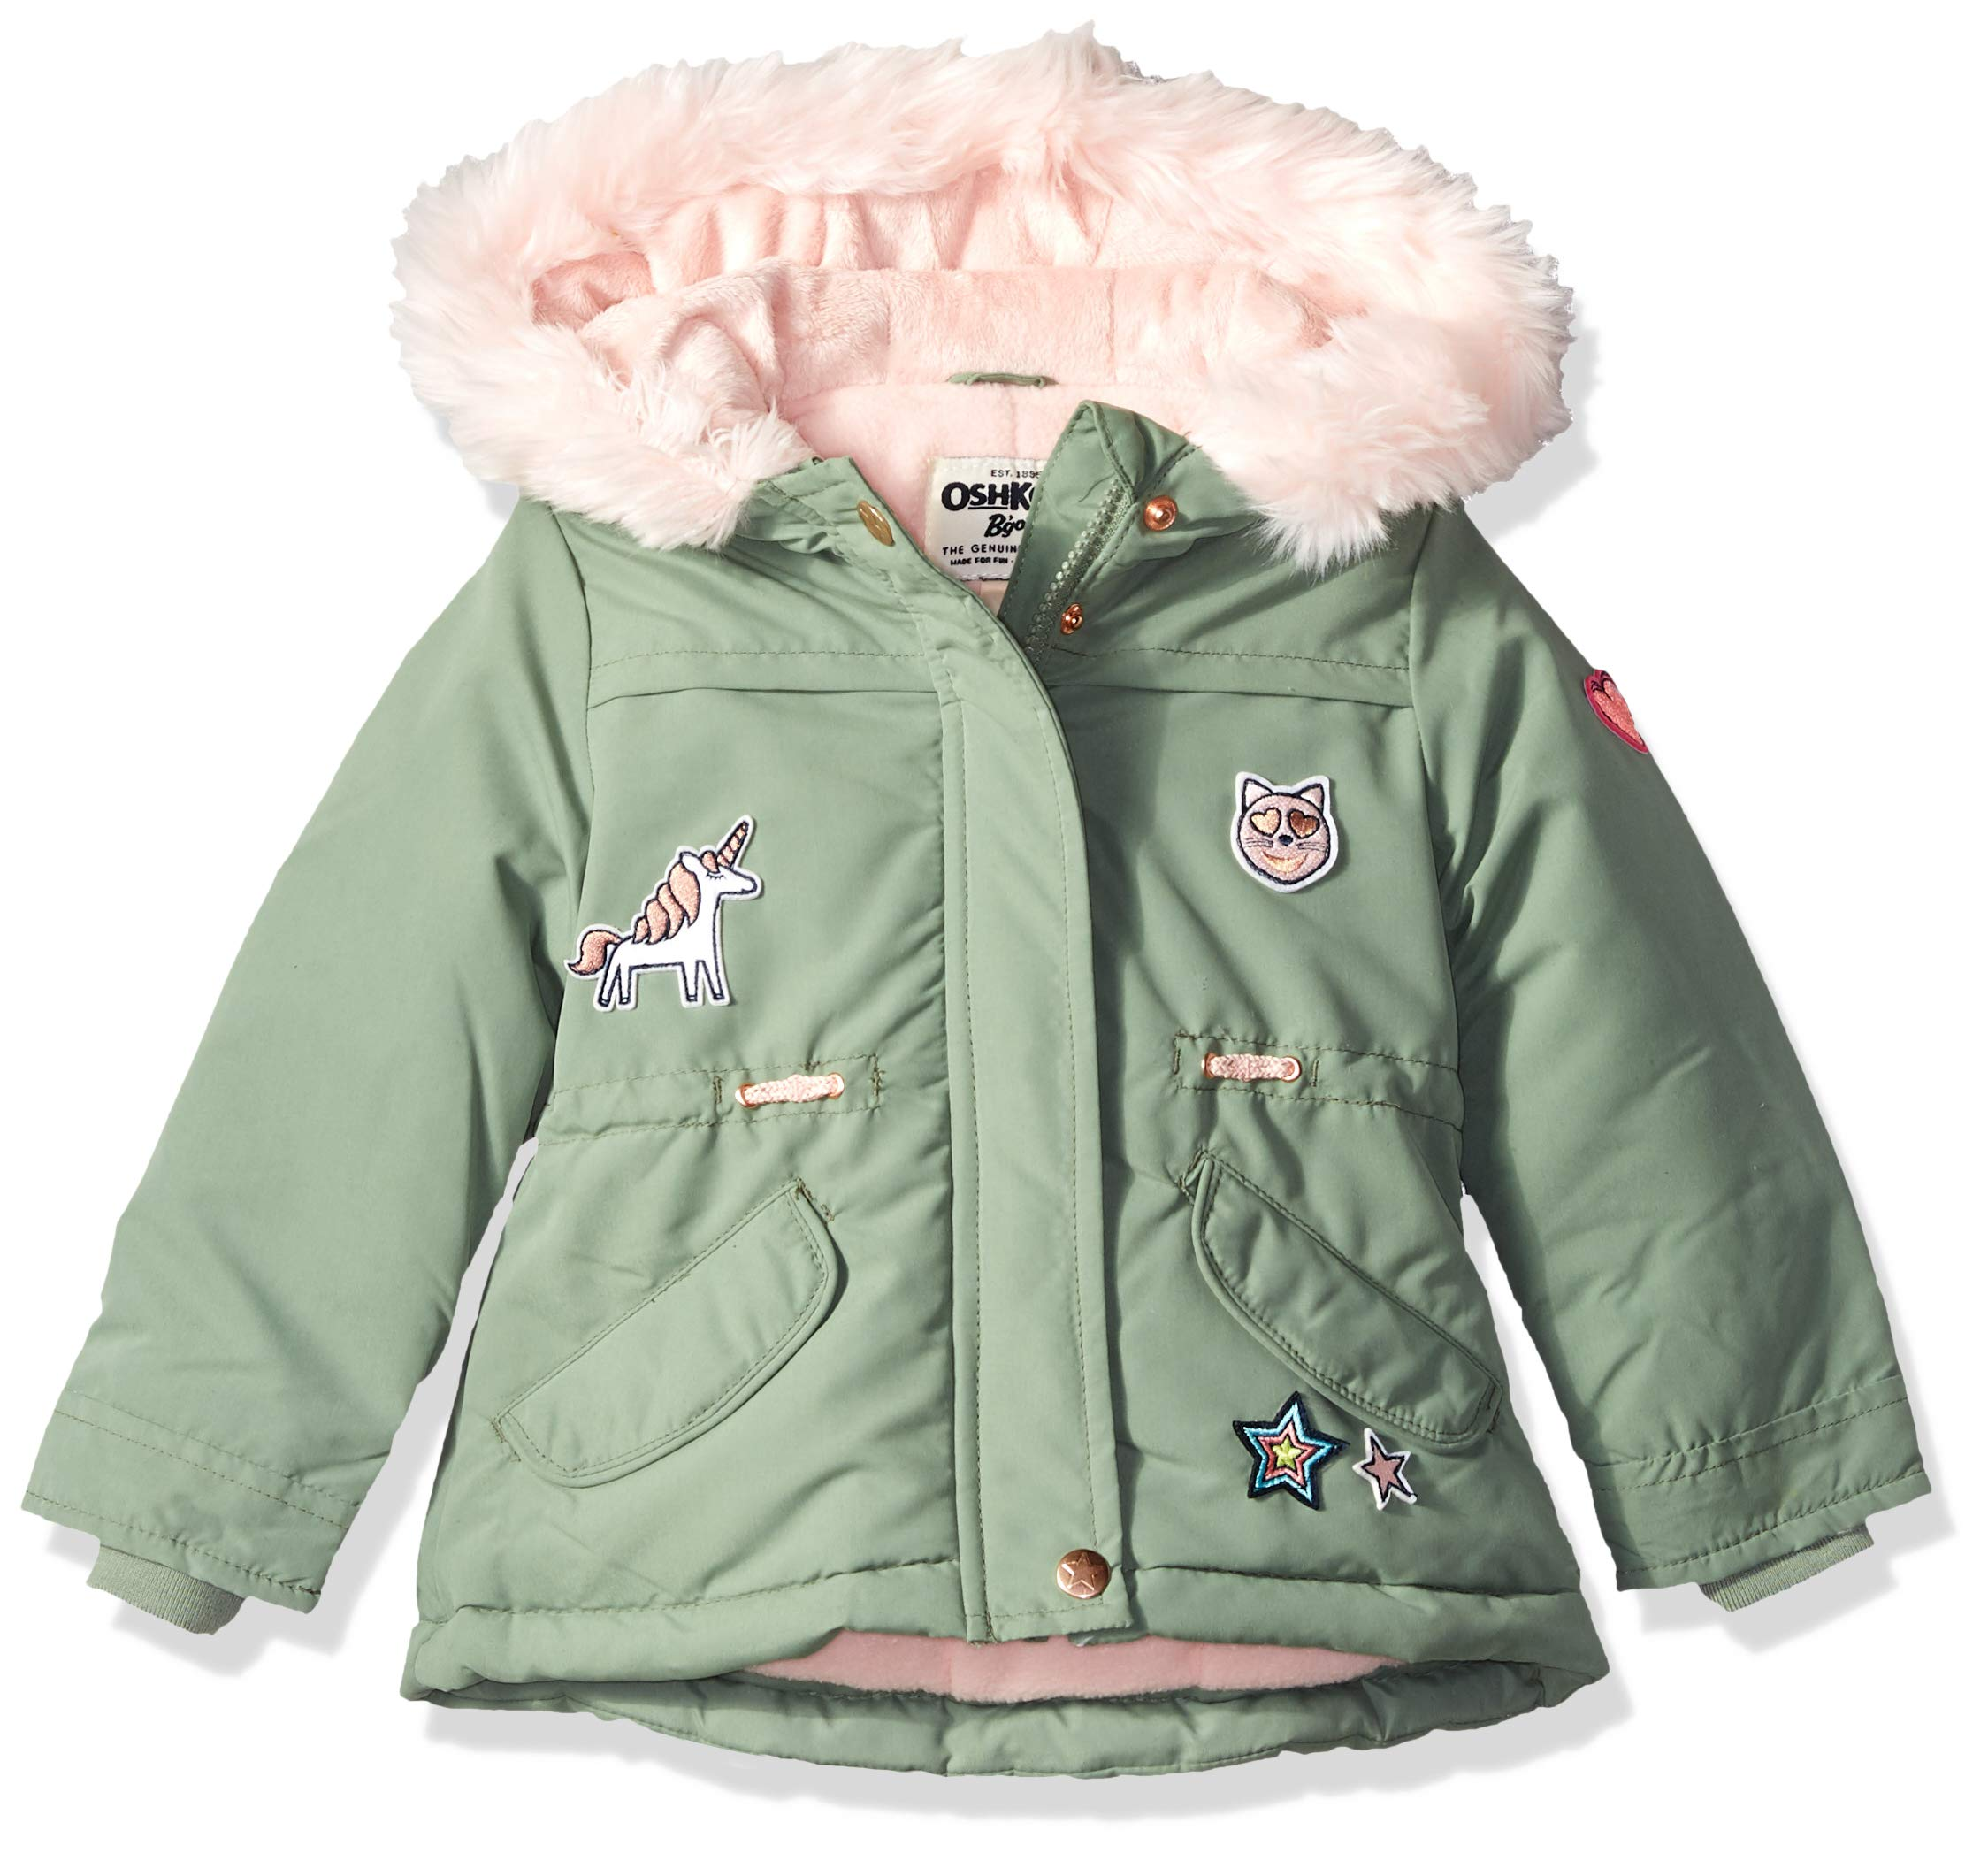 Osh Kosh Toddler Girls' Pretty Cool Parka Jacket, Acadia Green/Grace Pink Patches, 2T by OshKosh B'Gosh